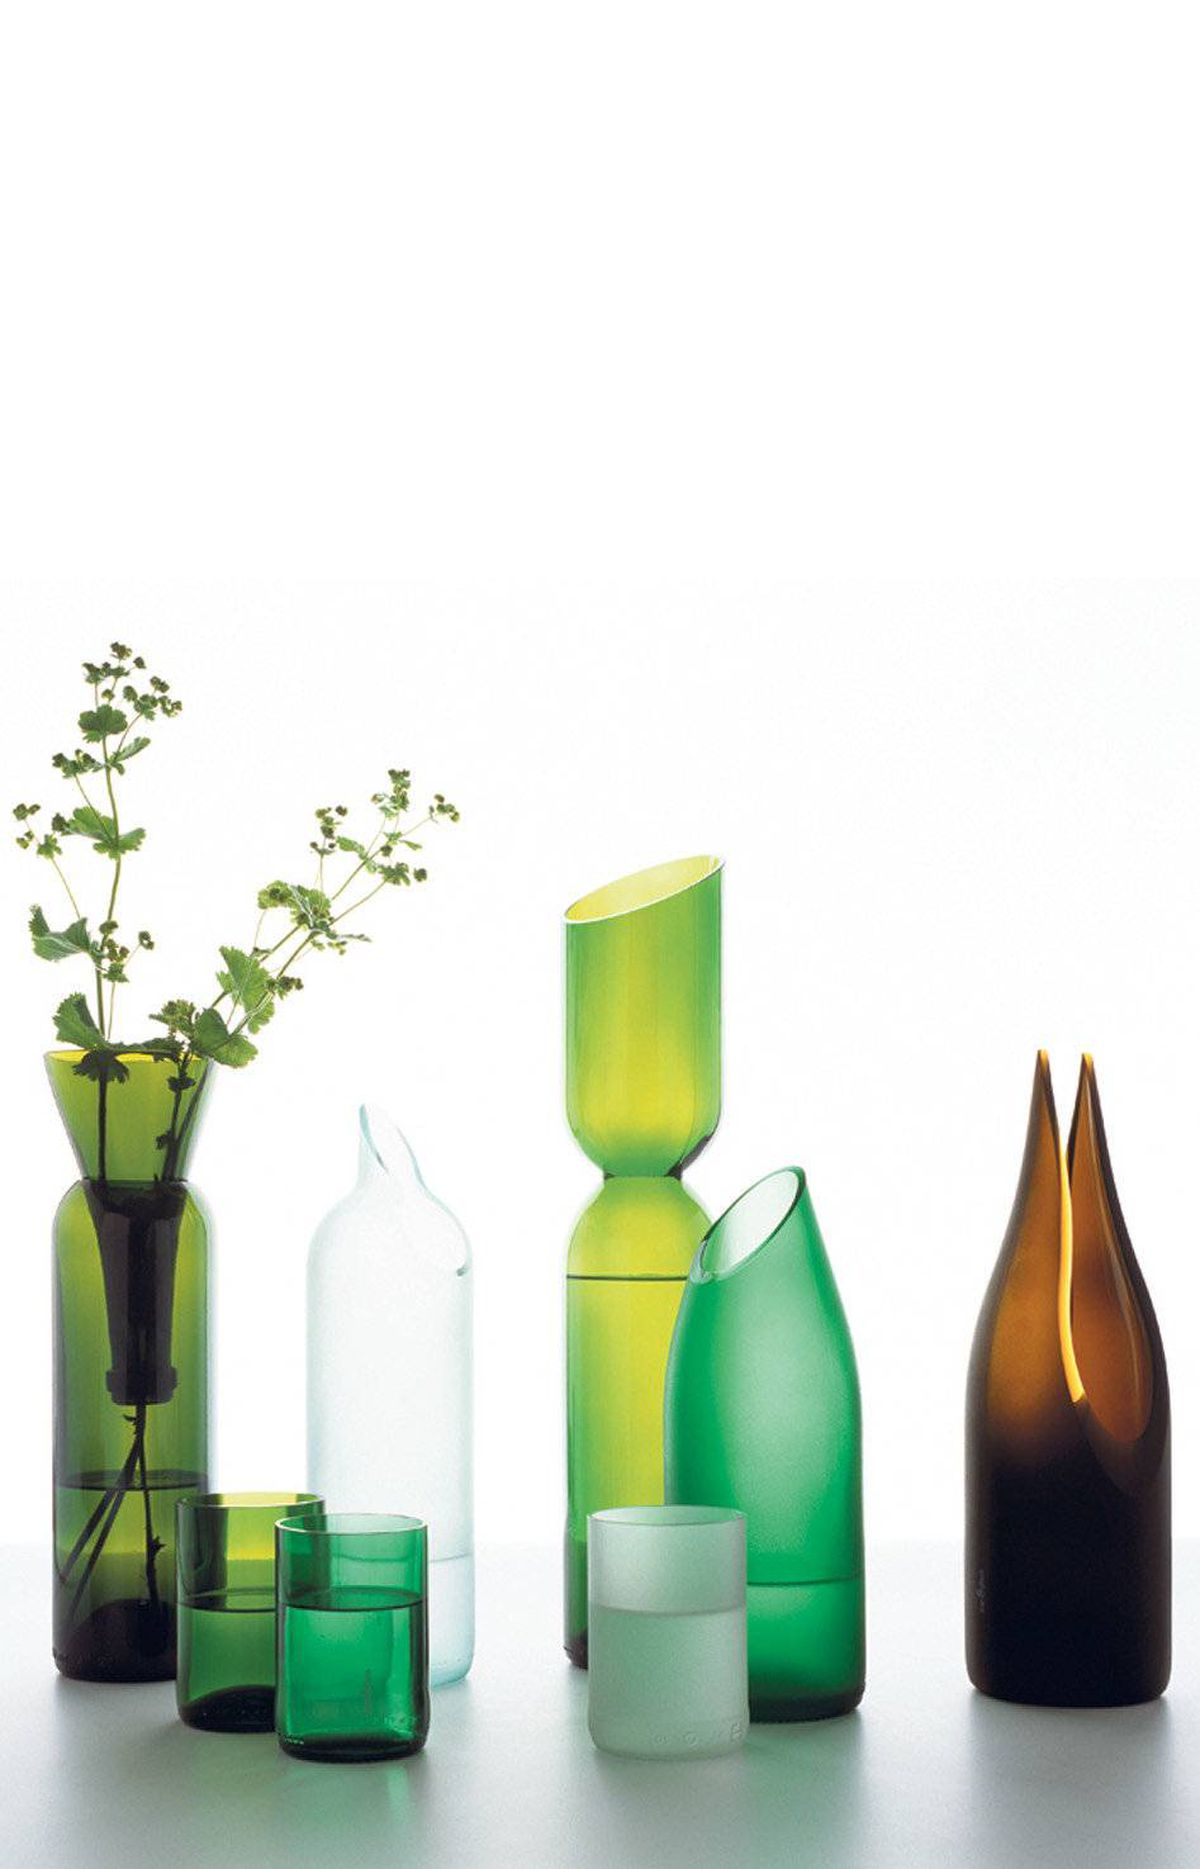 PASSING THE BOTTLE Already included in the permanent collection of New York's Museum of Modern Art, Tord Boontje and Emma Woffenden's elegant tranSglass collection of vases, carafes and tumblers for L.A.-based Artecnica may start out as wine bottles, but they emerge from the recycling process as one-of-a-kind objets. And over the past several years, they've been made in Guatemala, where young people are trained in the art of glassmaking. Visit www.artecnica.com for retailers across Canada.